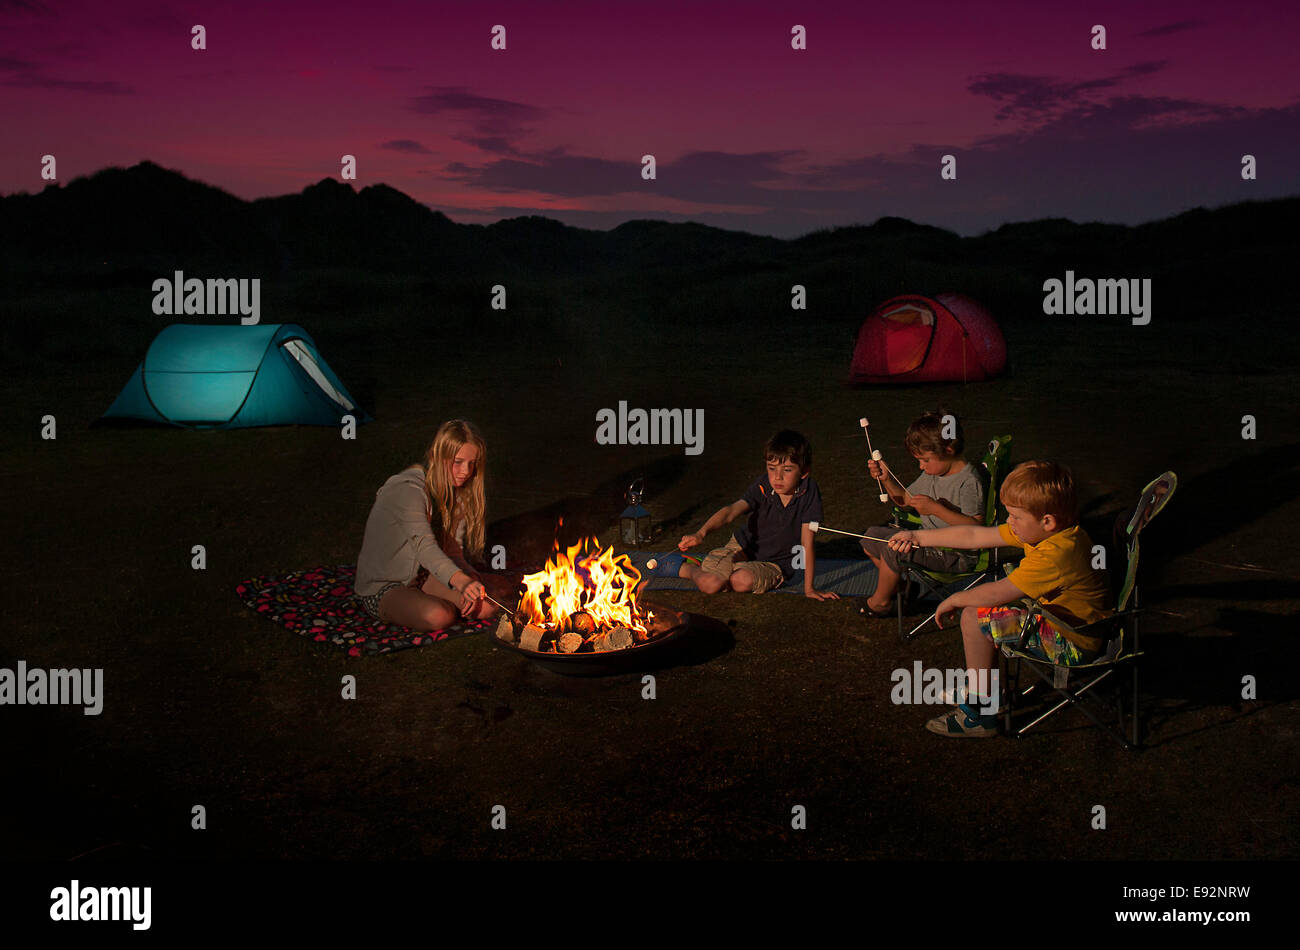 Campfire and night with kids - Stock Image